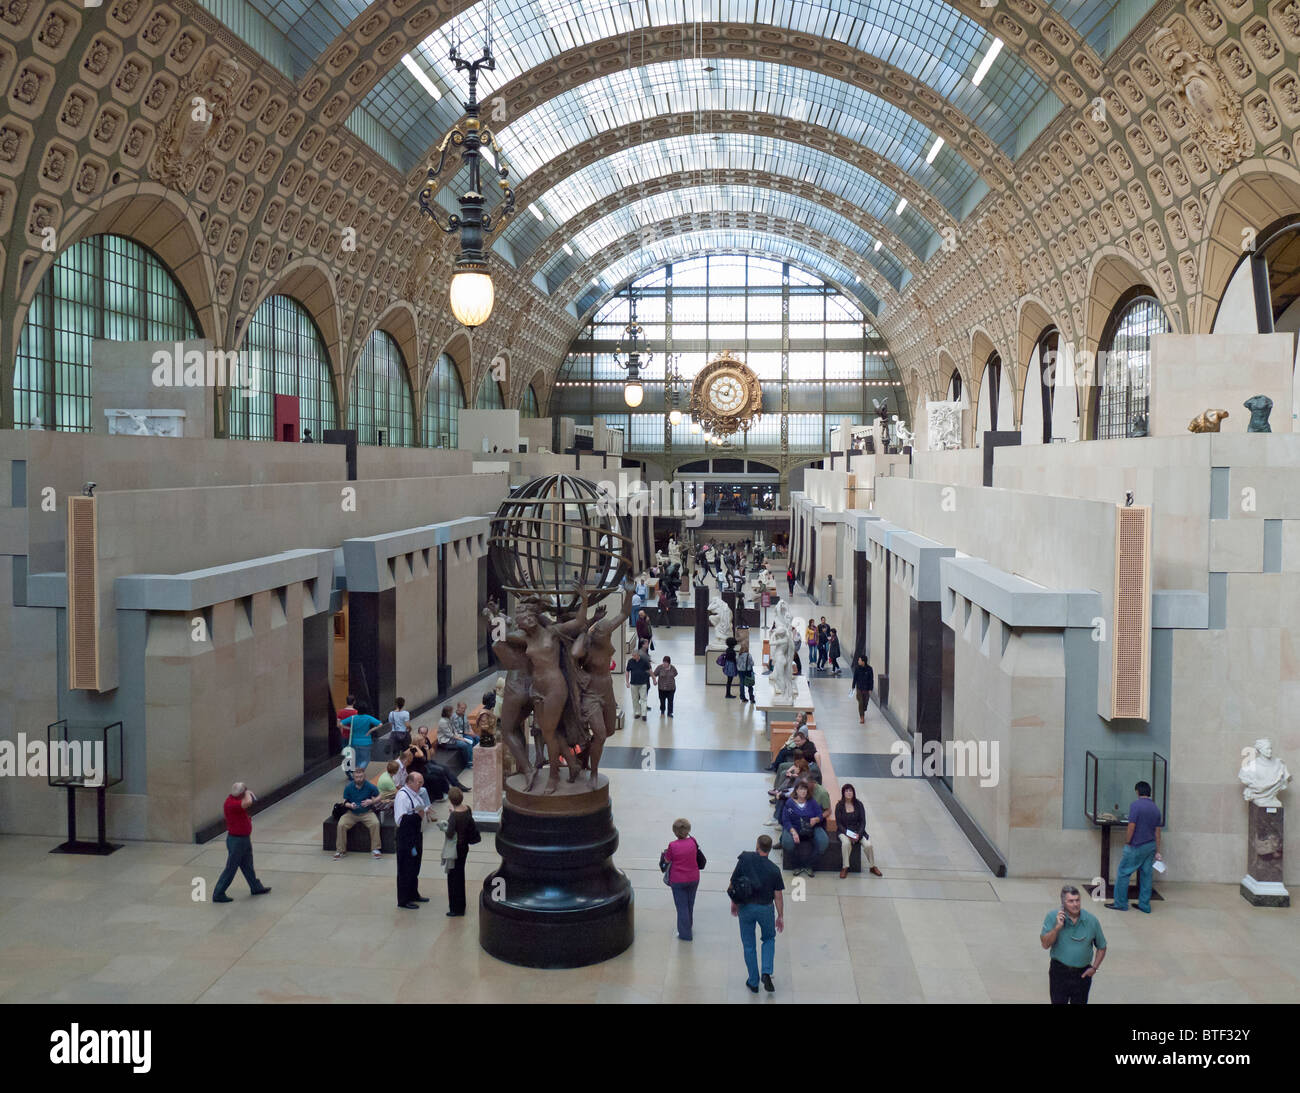 Interior of Musee d'Orsay in Paris France - Stock Image